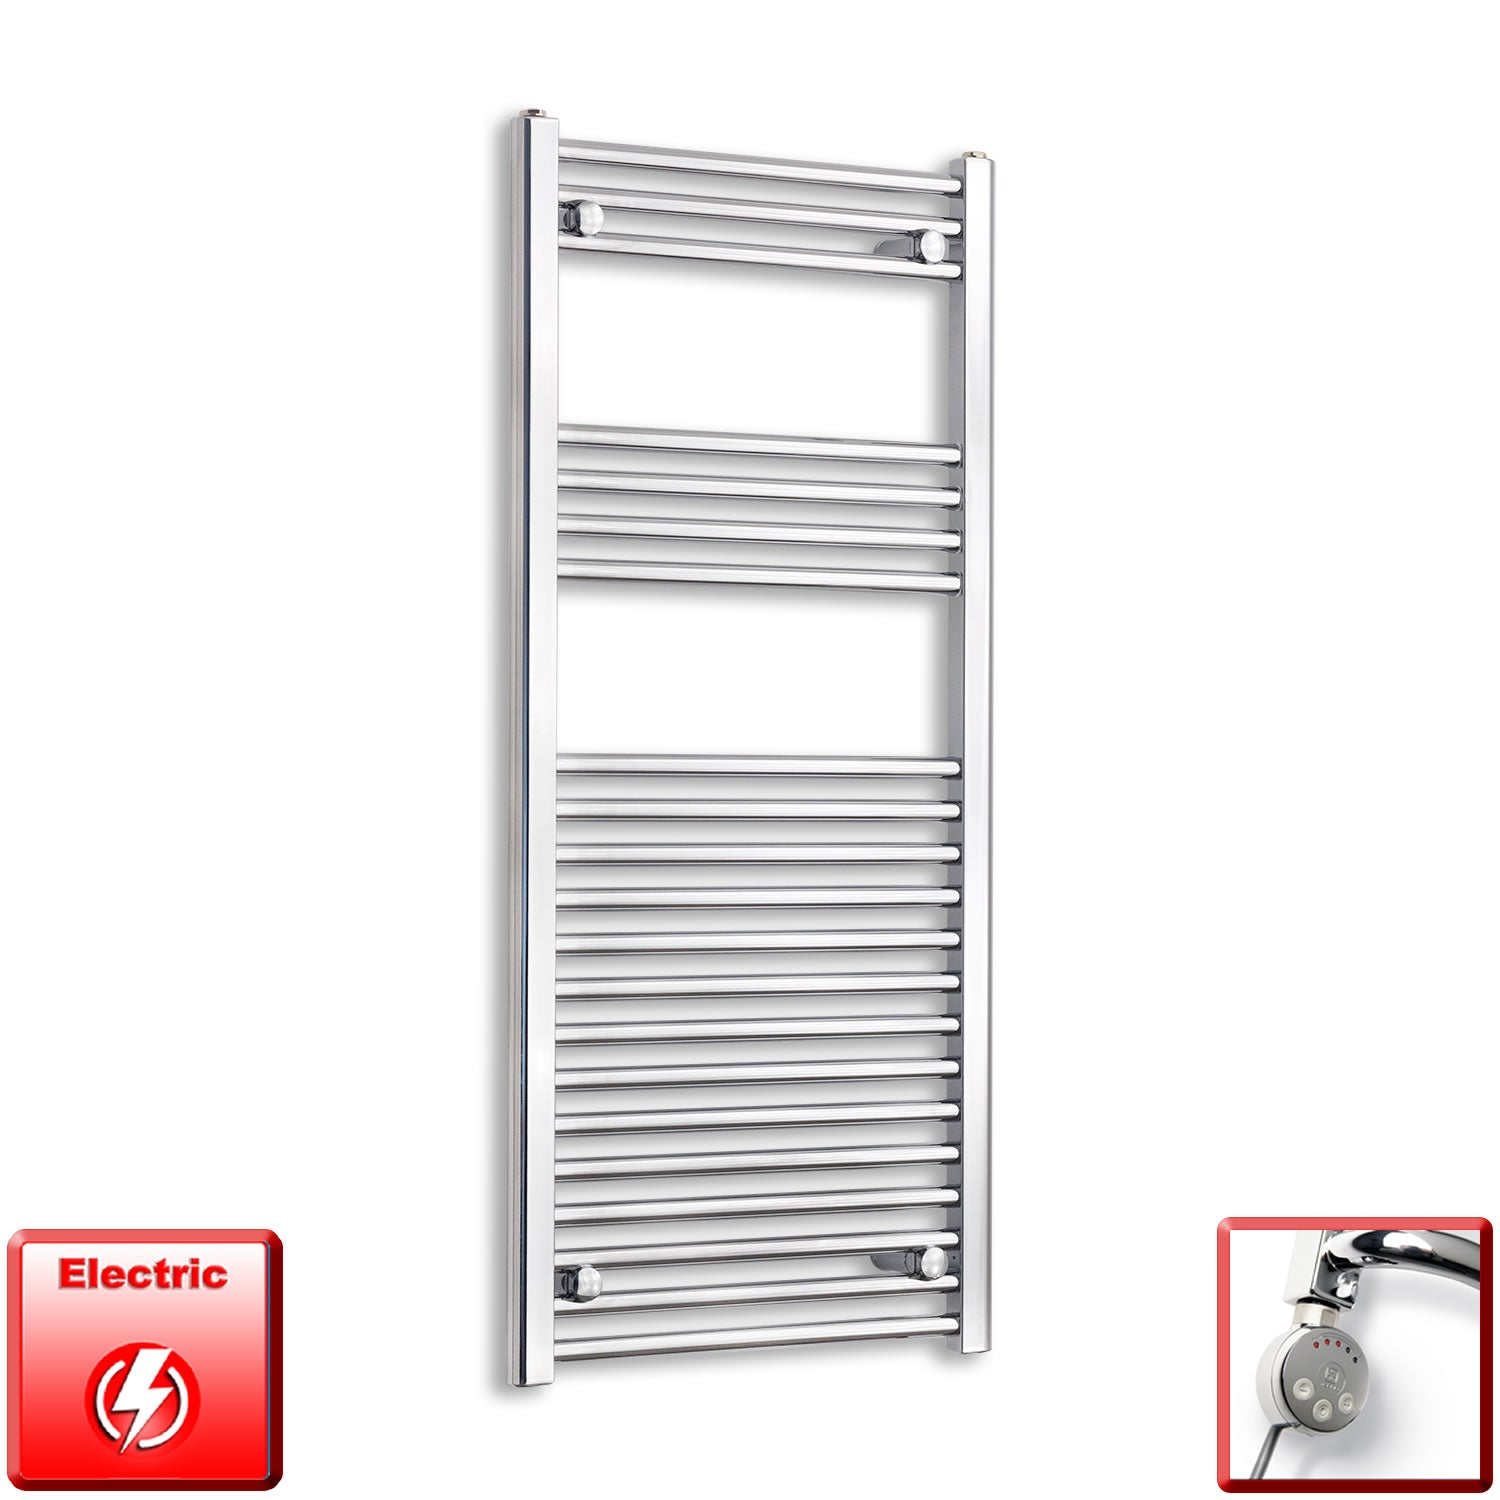 600mm Wide 1100mm High Pre-Filled Chrome Electric Towel Rail Radiator With Thermostatic MEG Element